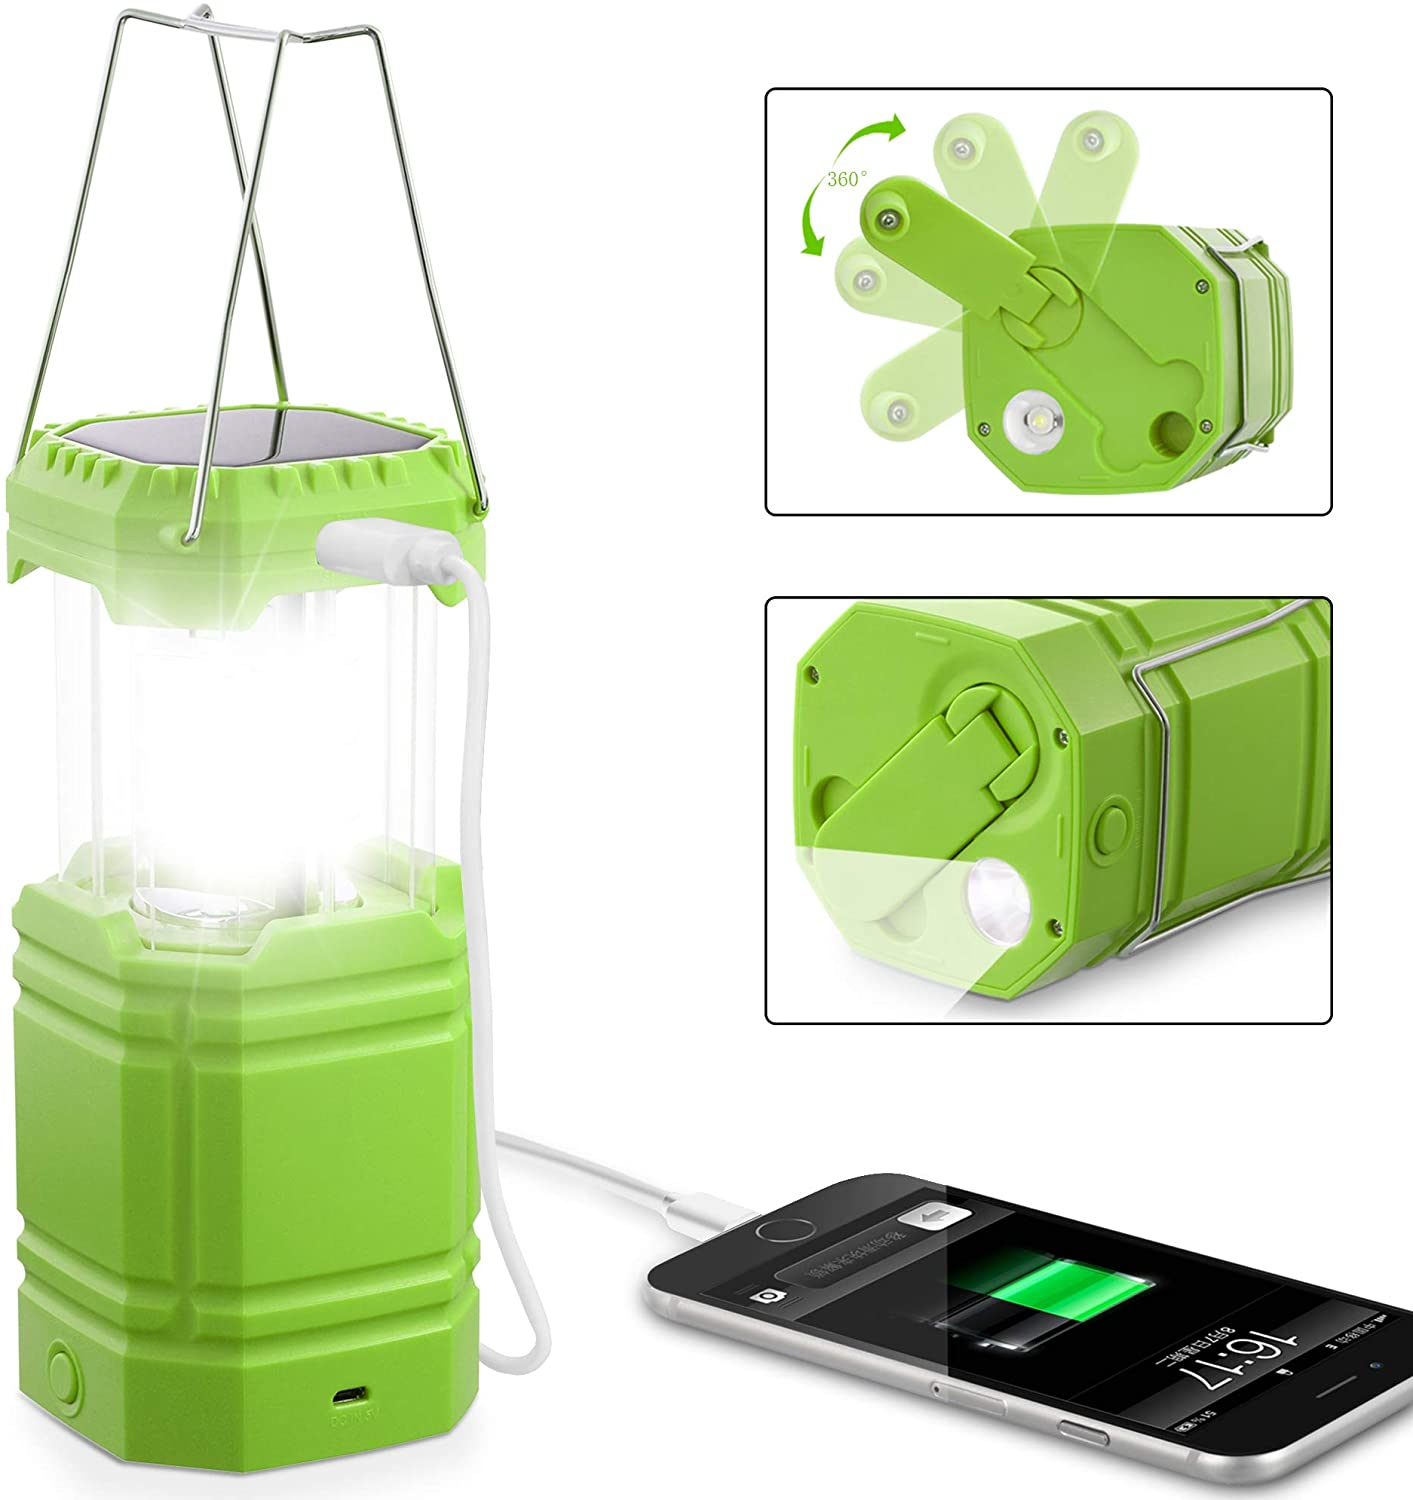 Holababy rechargeable lantern